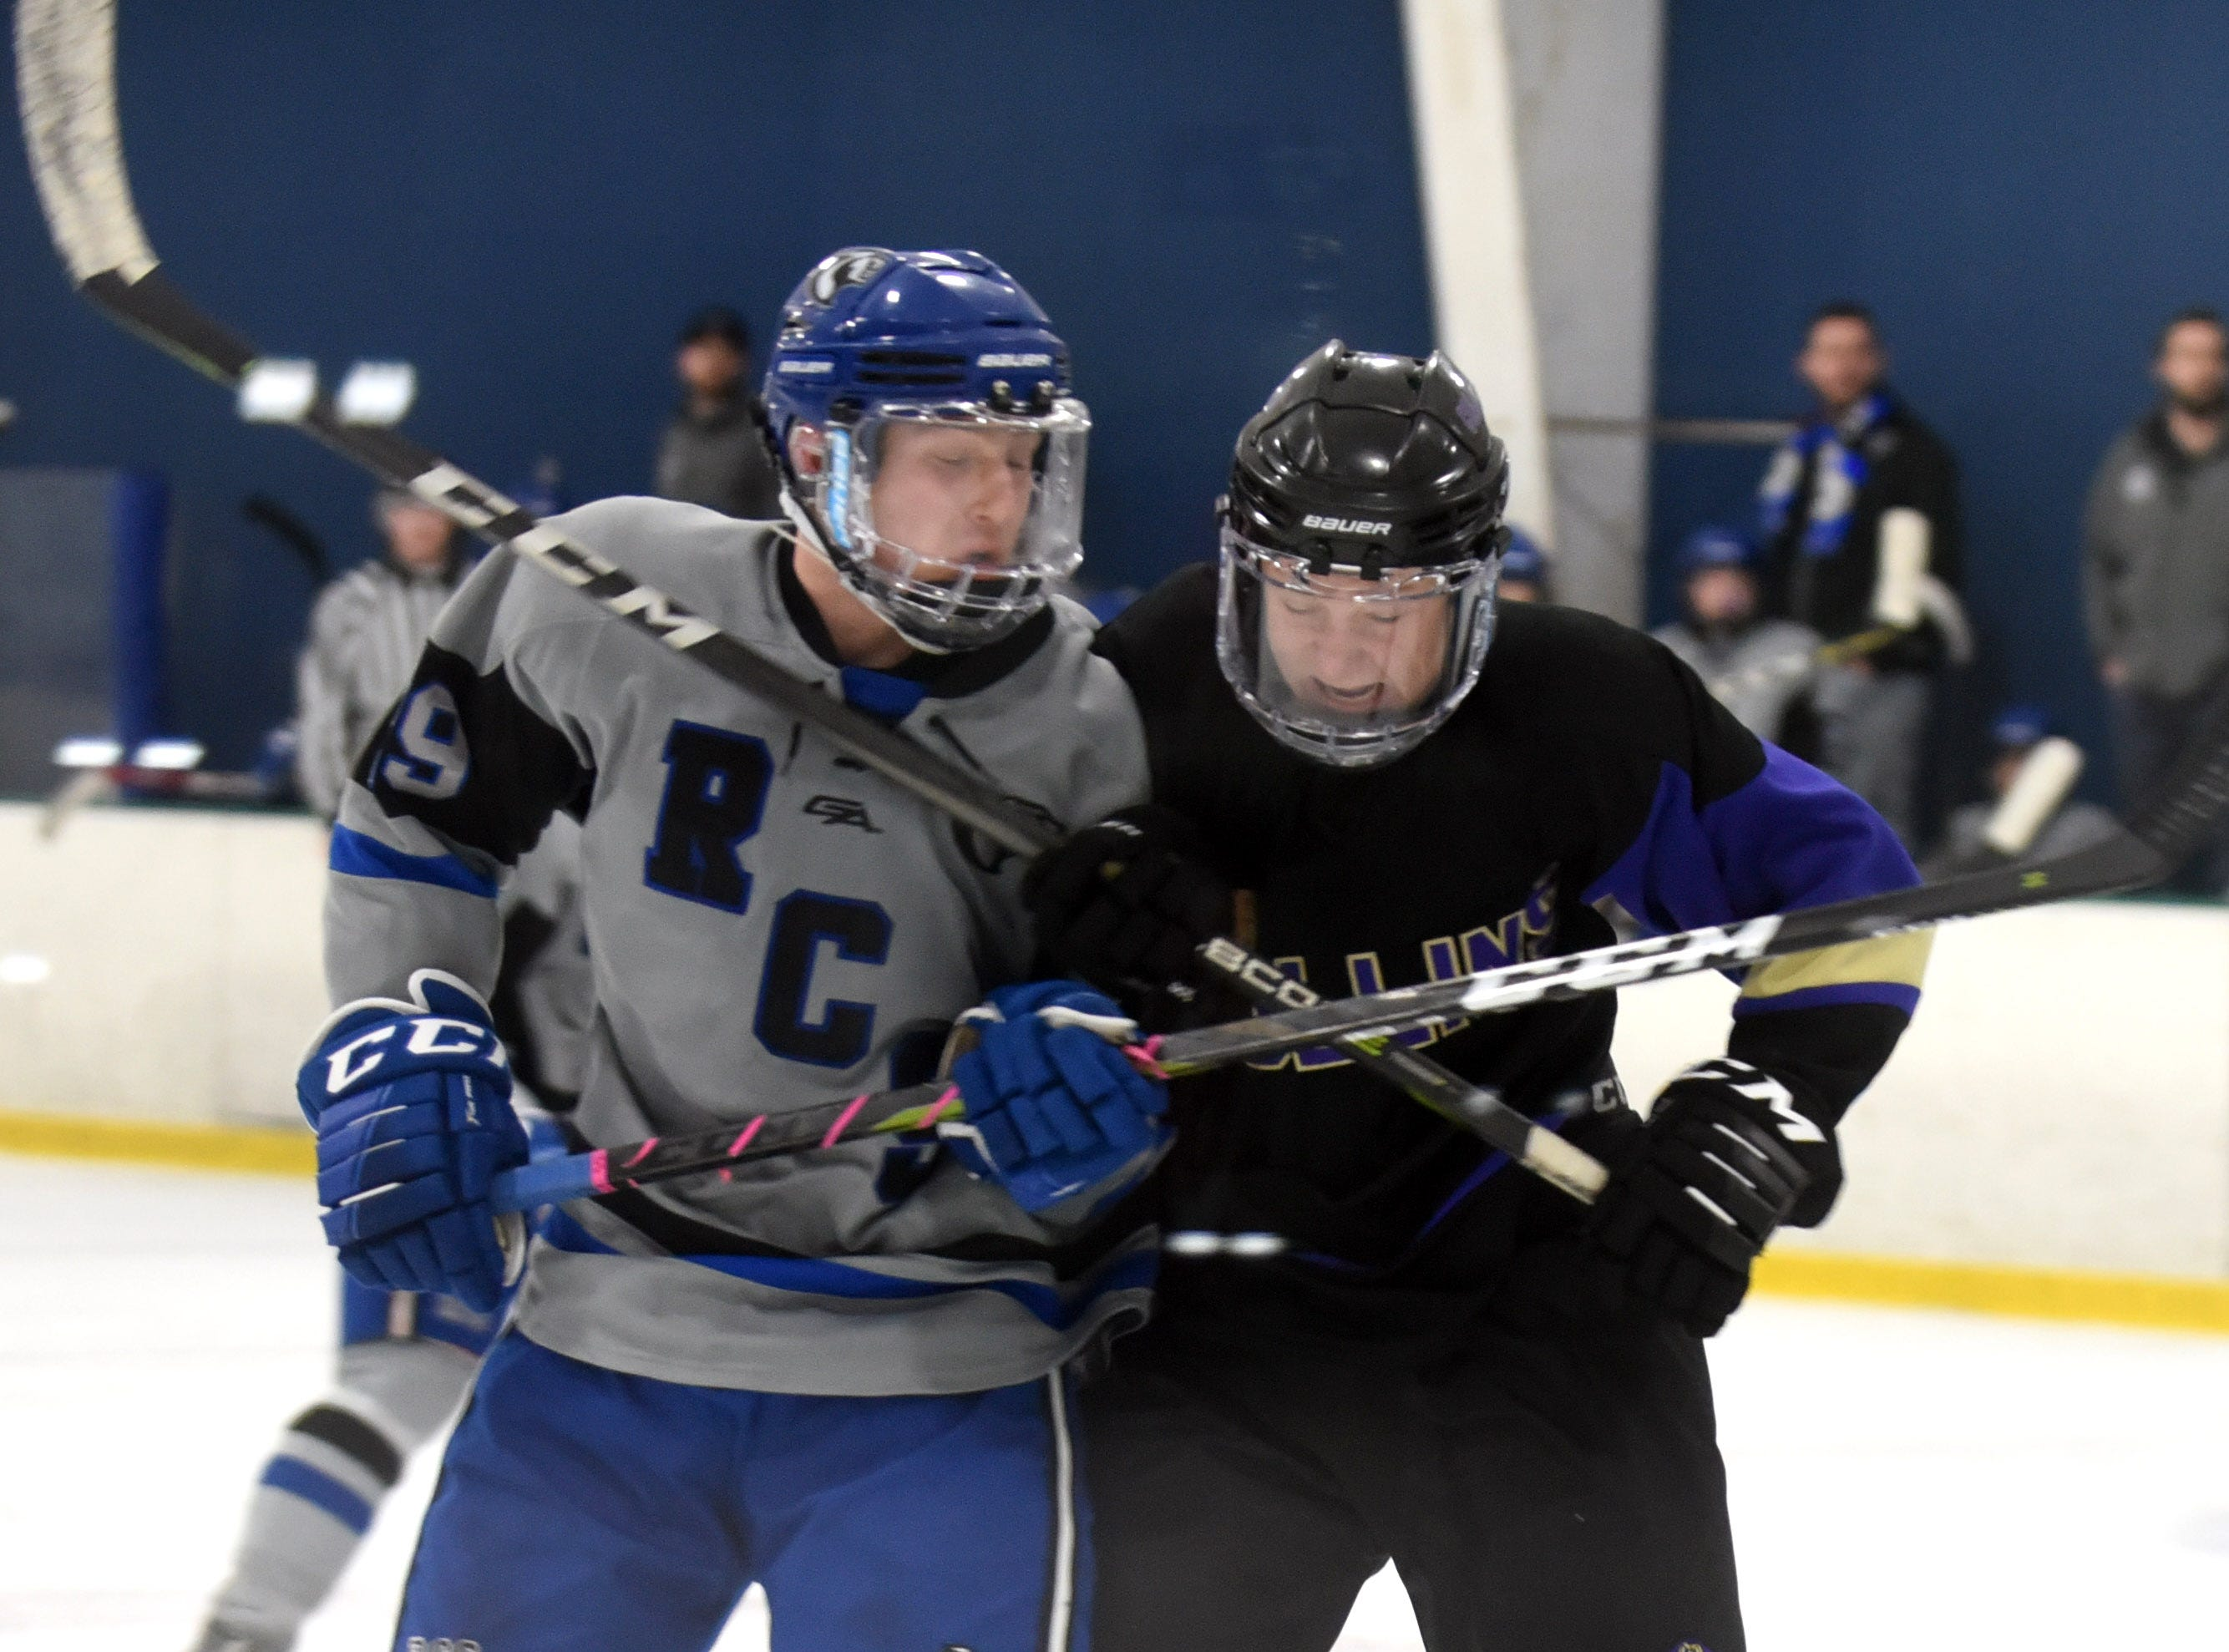 Resurrection Christian's Michael Lewis and Fort Collins' Bryce Hall check into each other during the game on Saturday, Feb 2, at NoCo Ice Center, 7900 N Fairgrounds Ave, in Fort Collins.